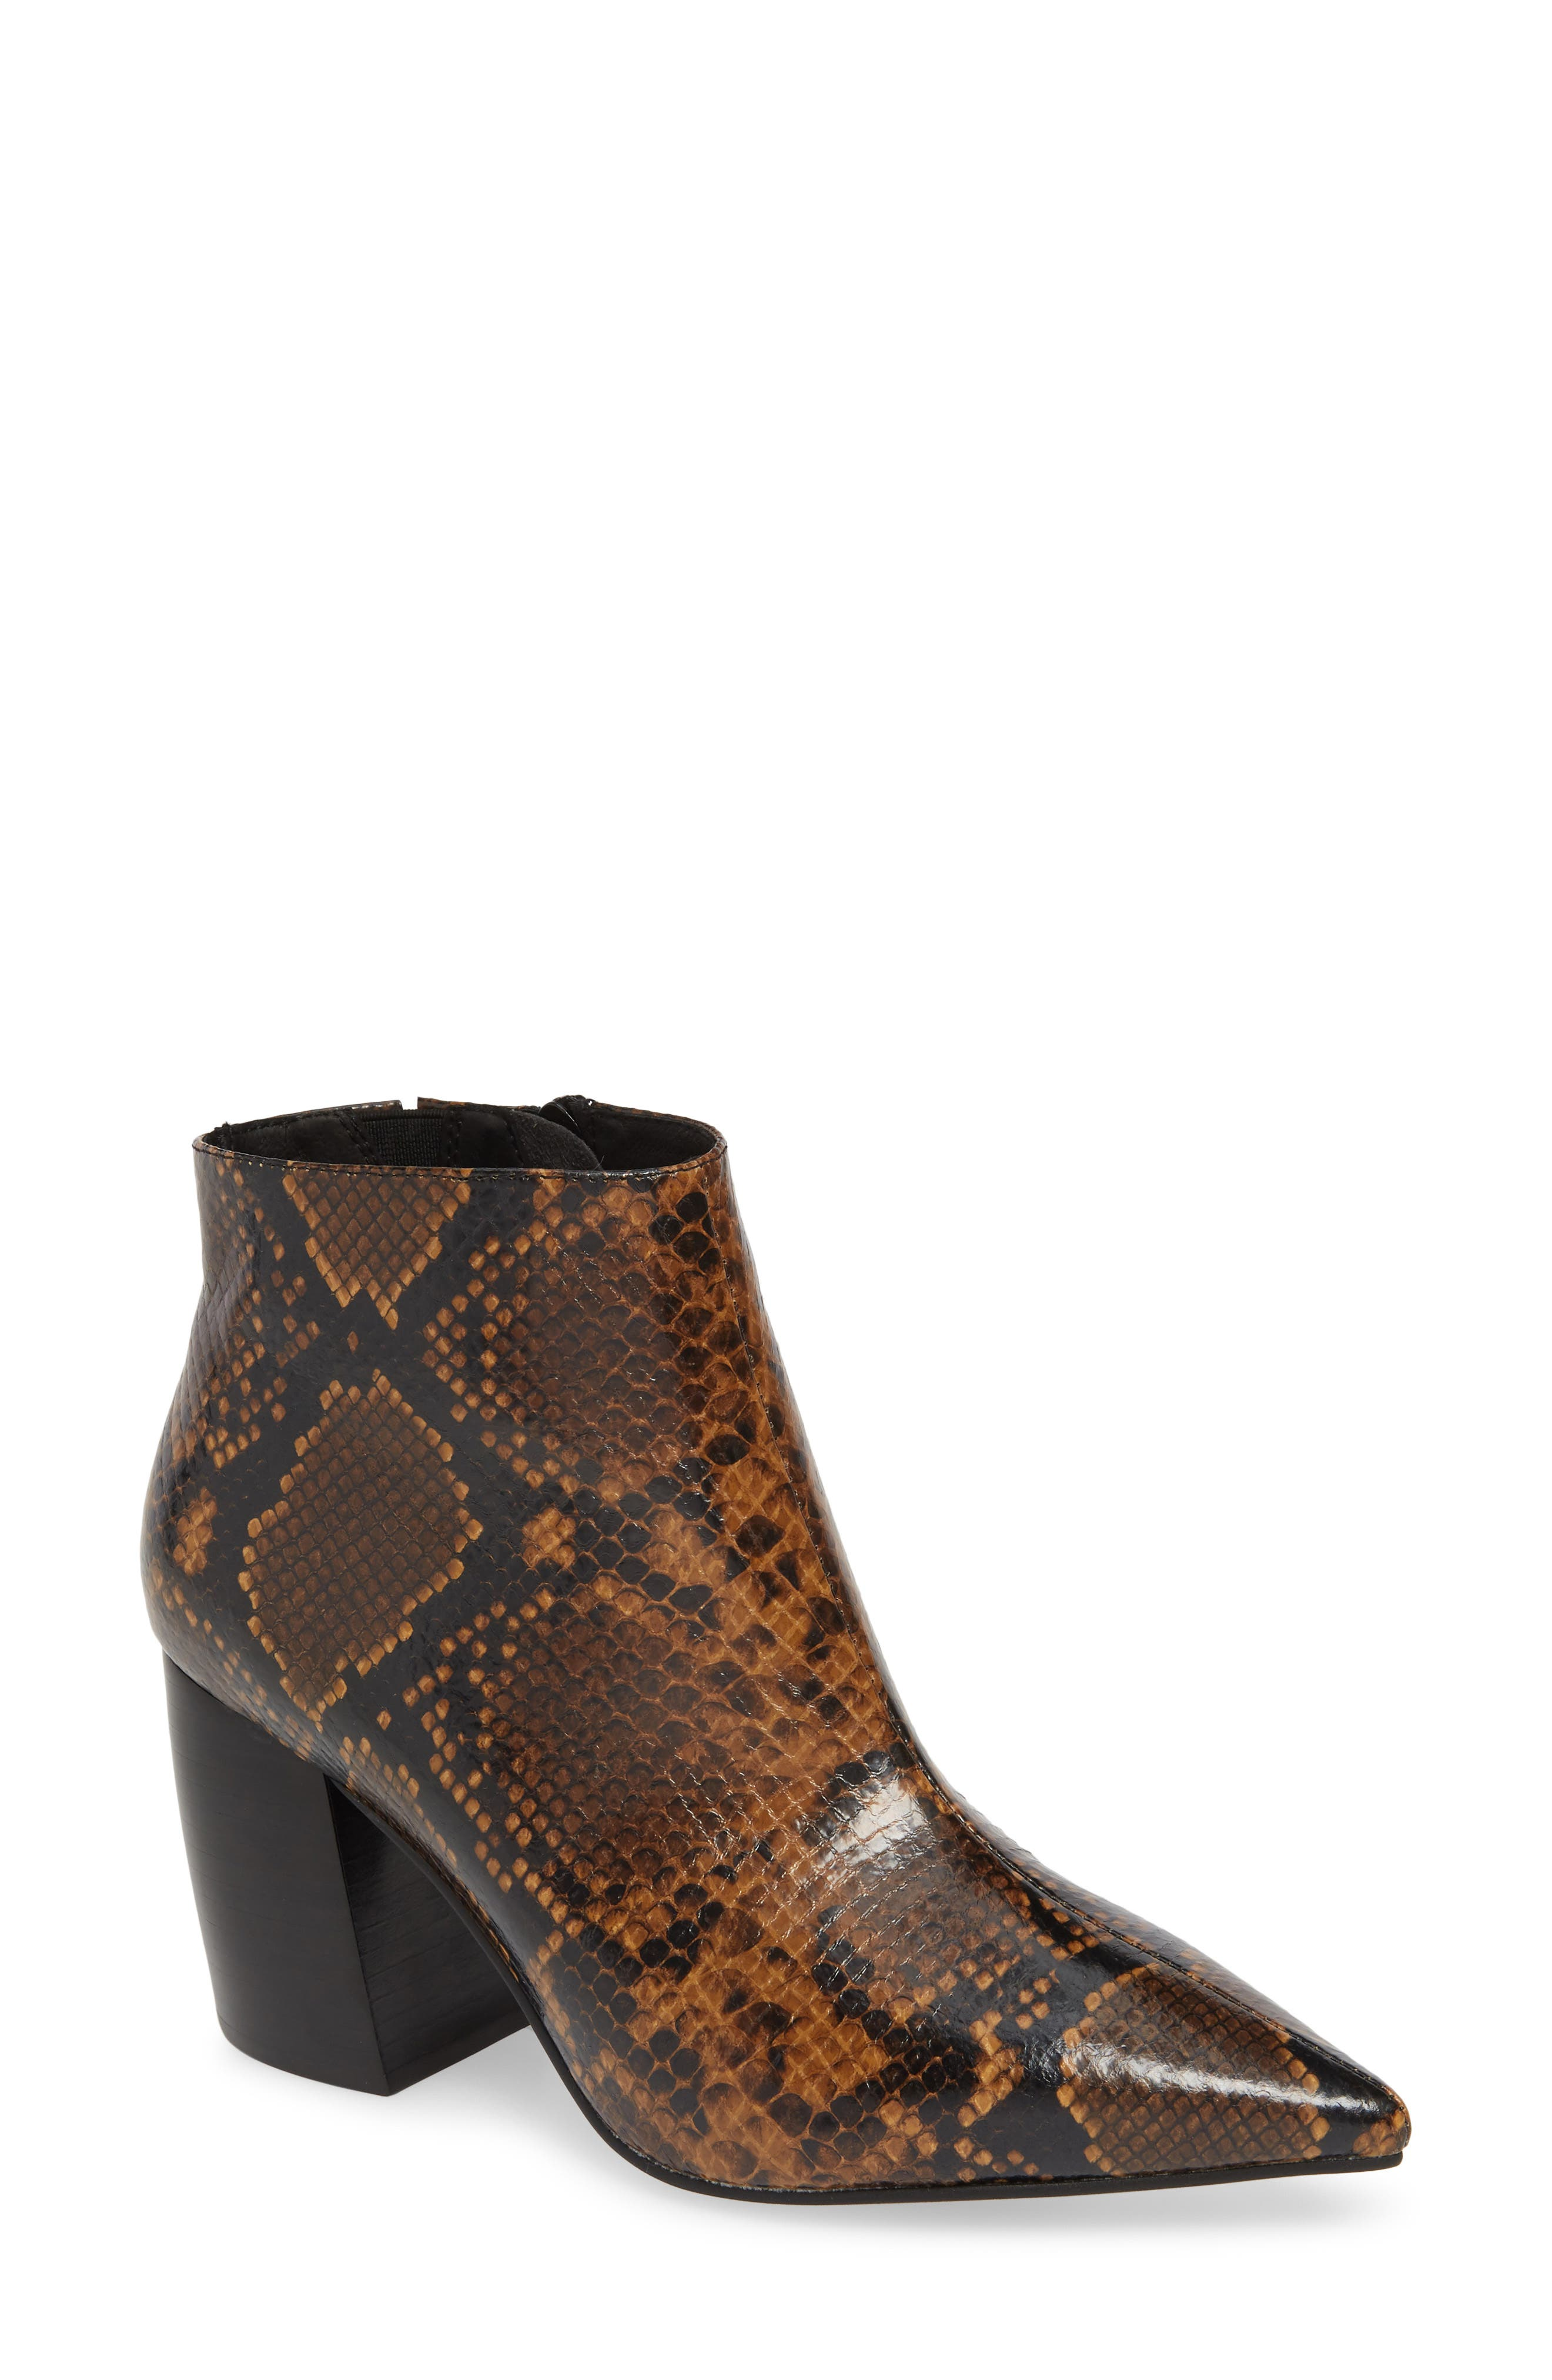 JEFFREY CAMPBELL, Final Bootie, Main thumbnail 1, color, NATURAL/ BLACK SNAKE PRINT